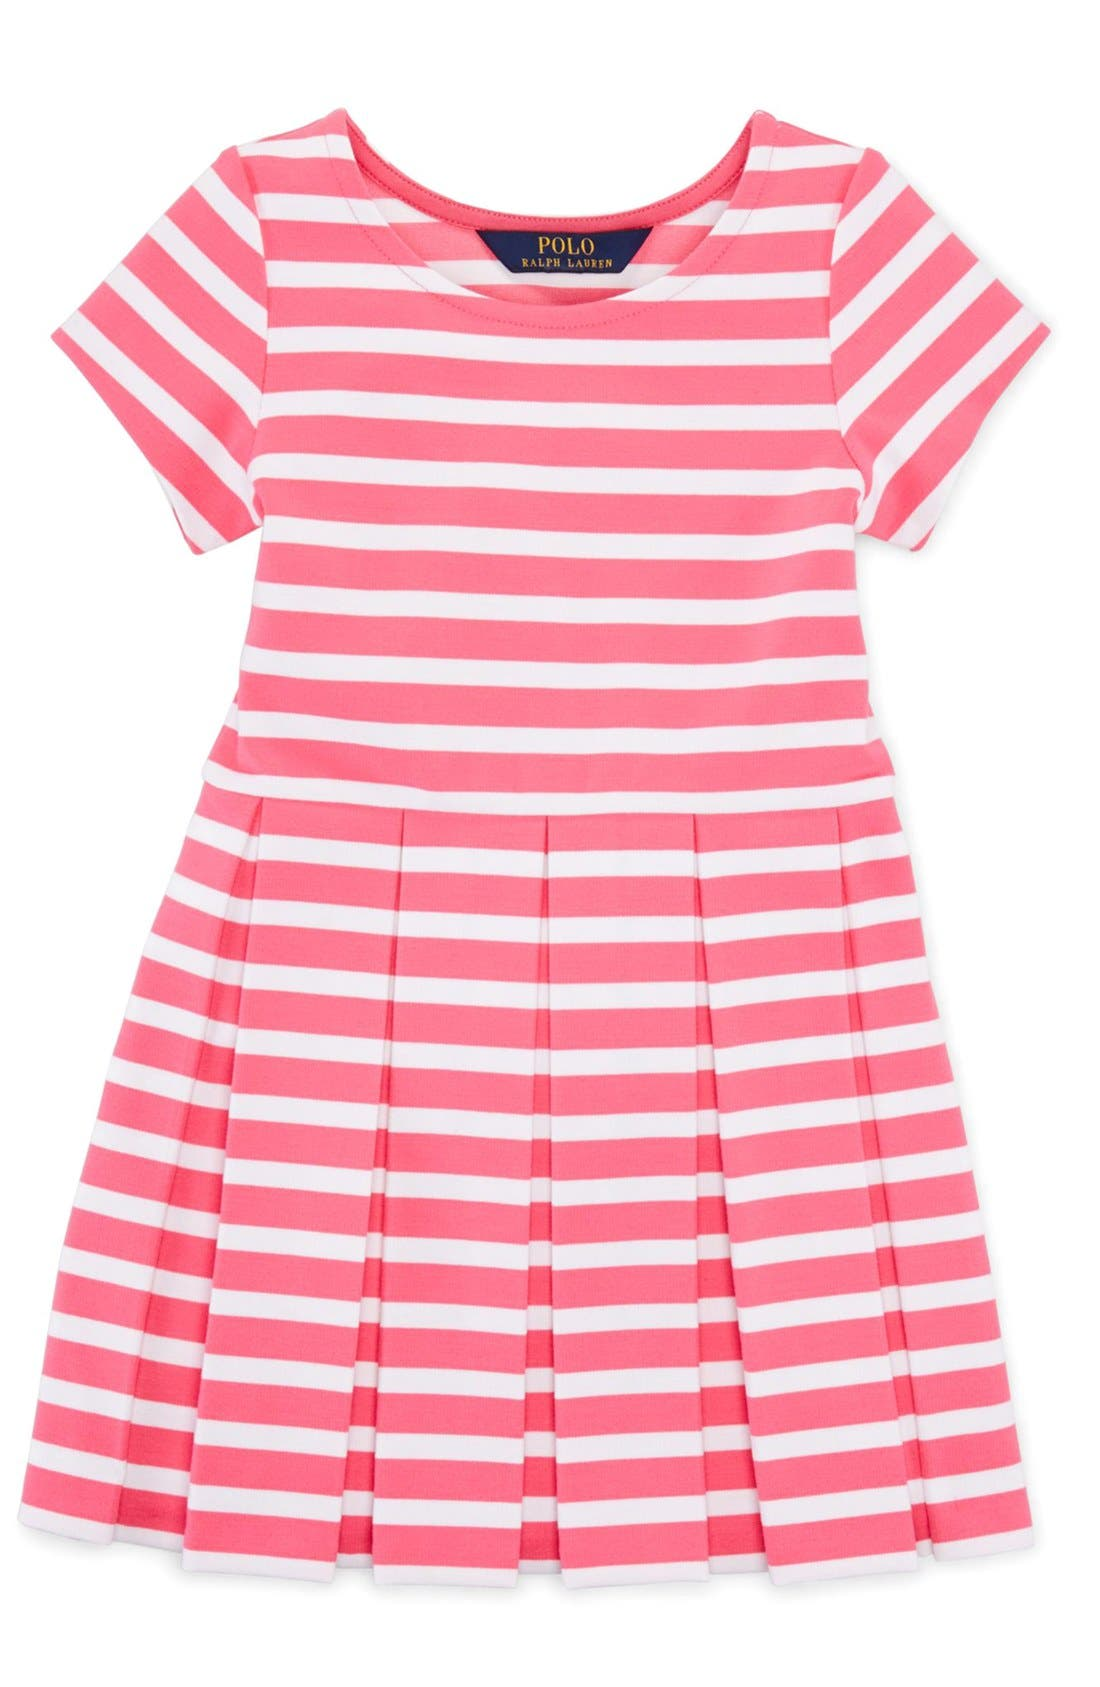 Alternate Image 1 Selected - Ralph Lauren Stripe Ponte Knit Pleated Dress (Toddler Girls & Little Girls)